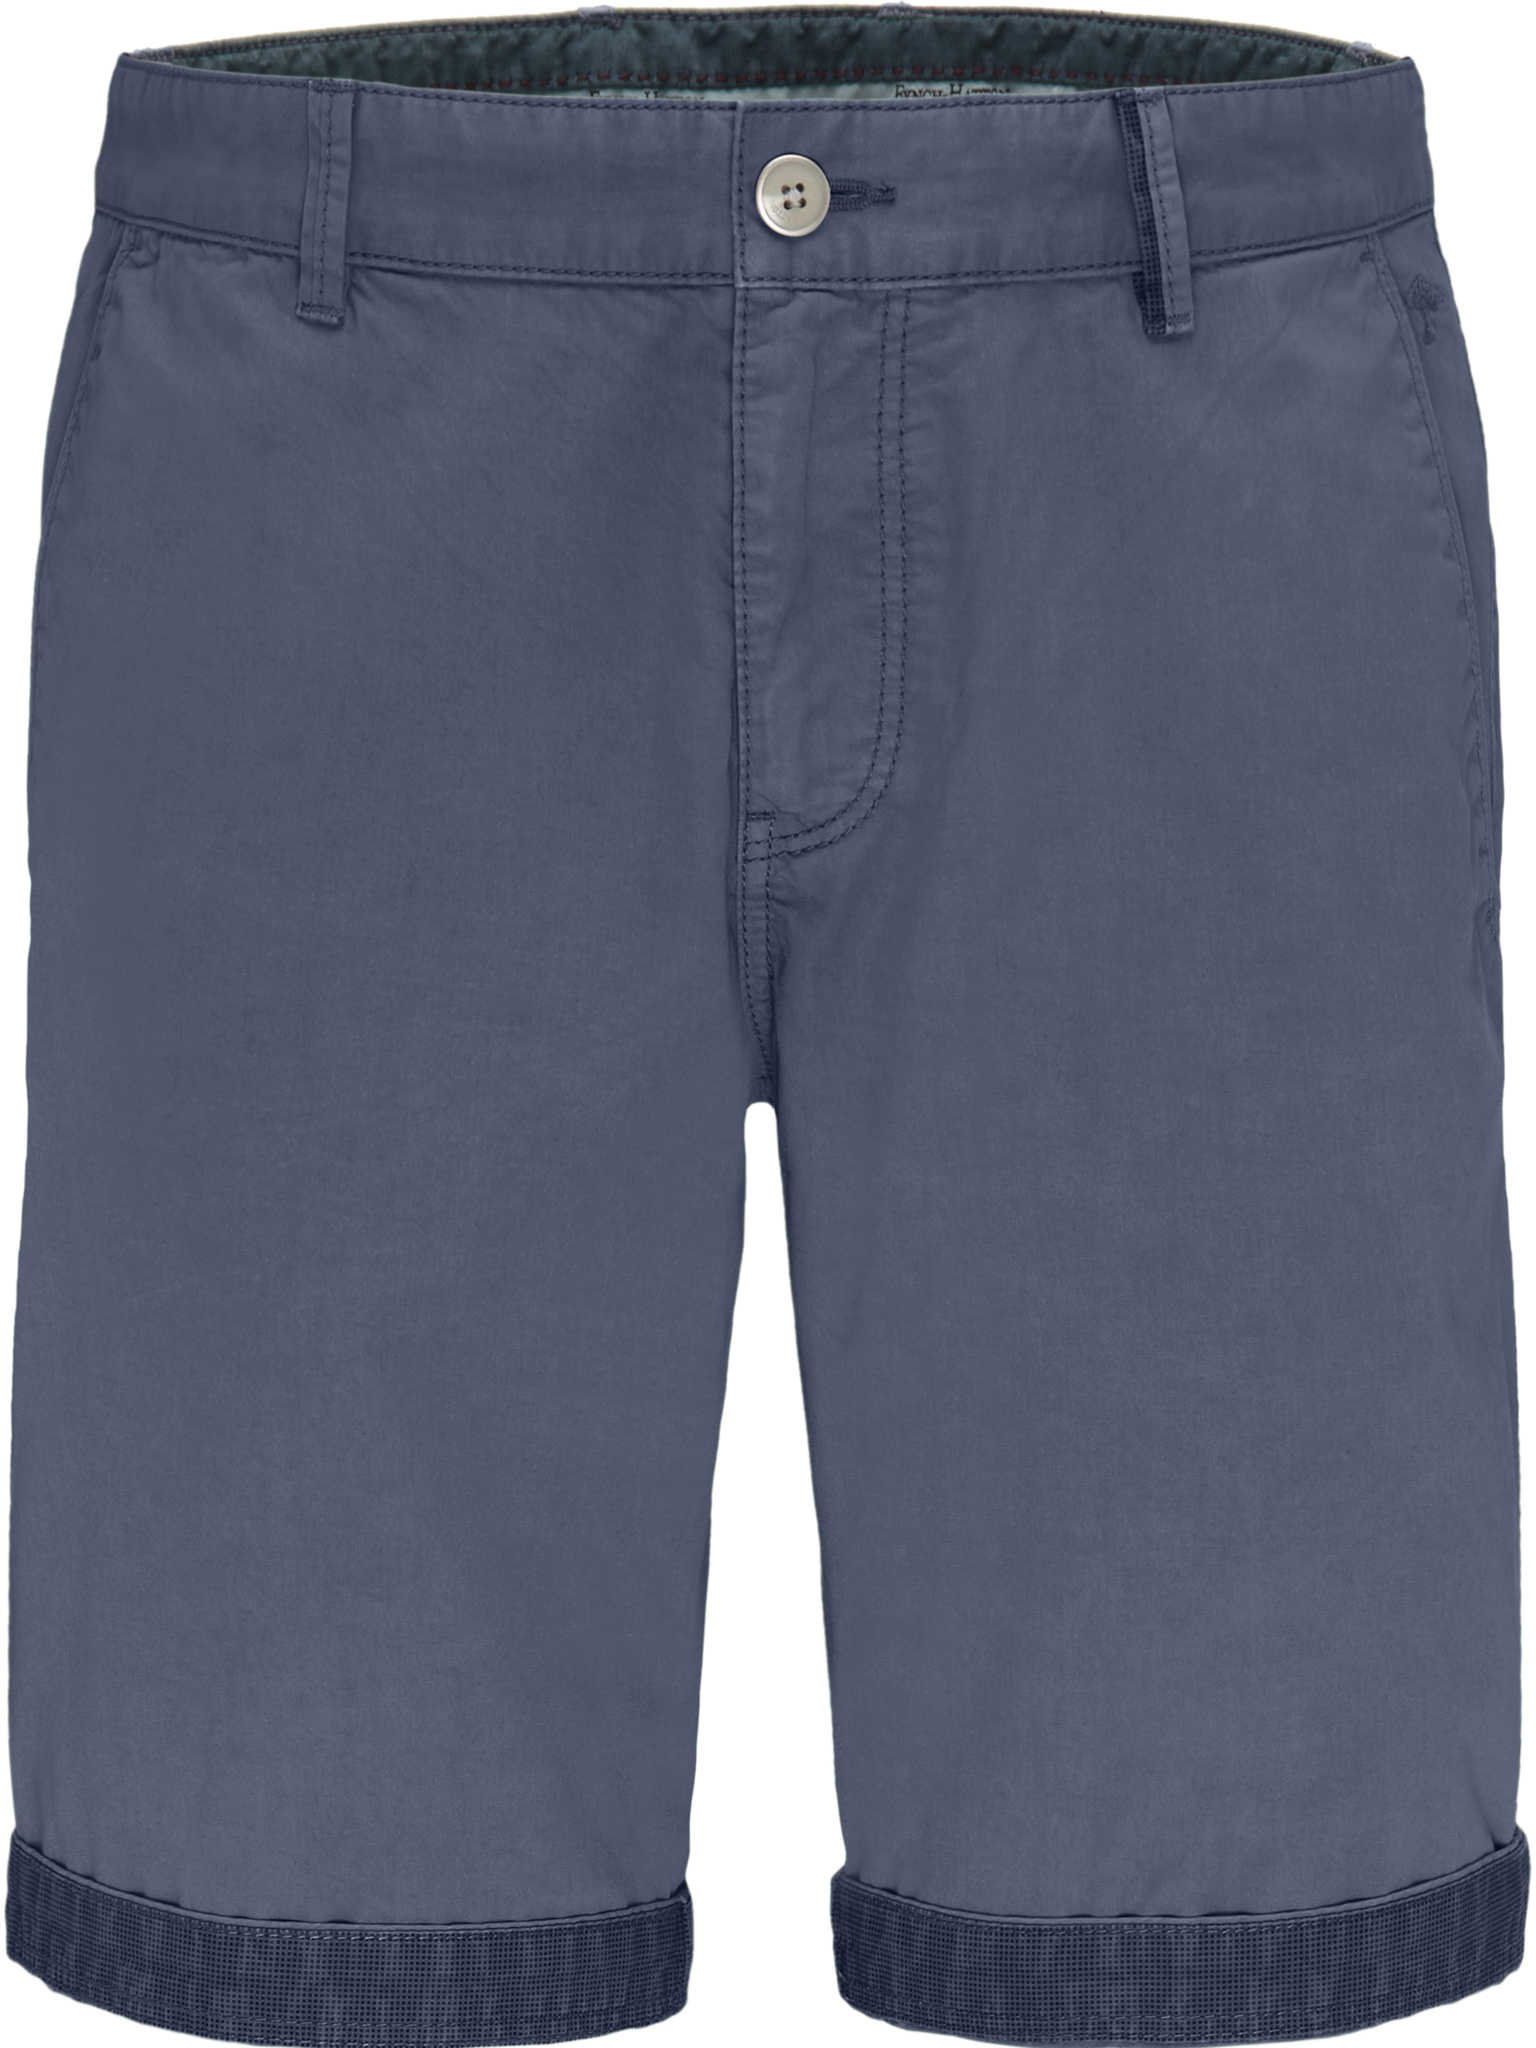 Fynch Hatton semi-taylored smart shorts in navy